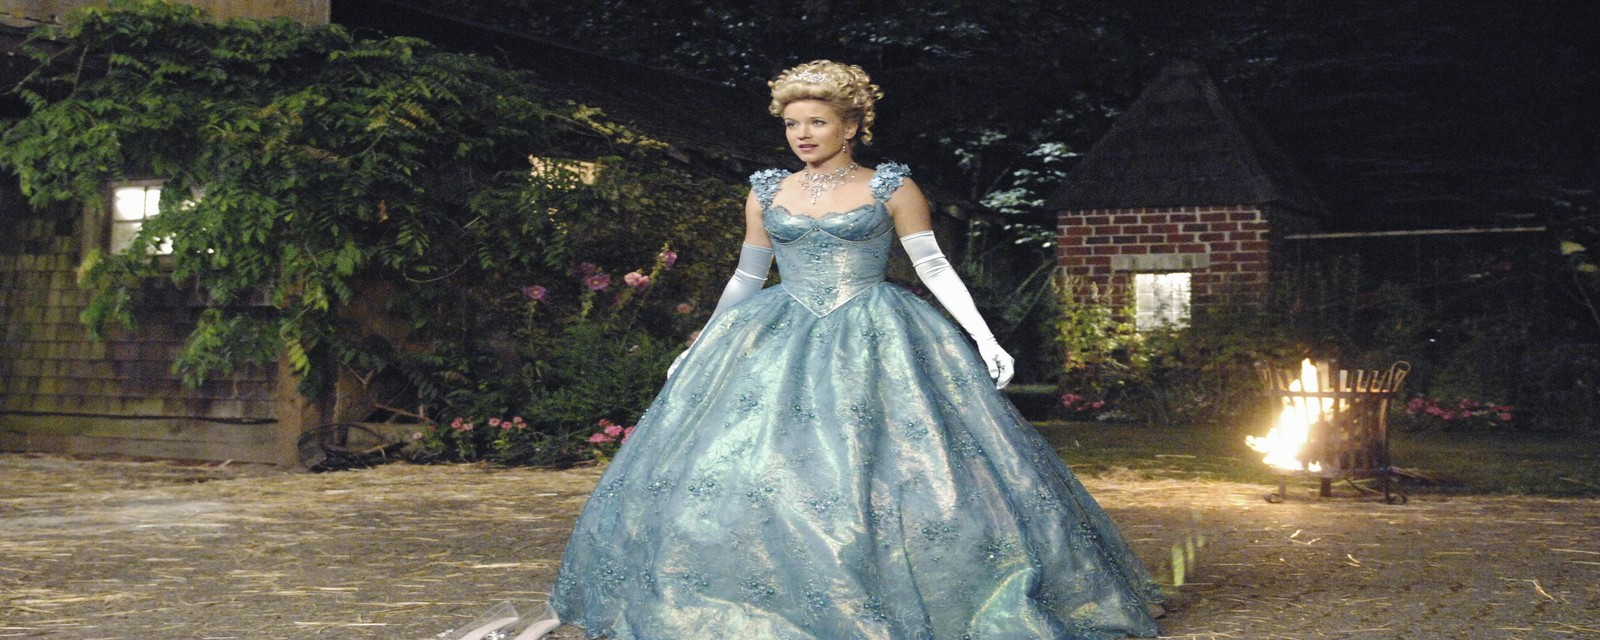 5 Epic Cinderella Moments on Once Upon a Time | Once Upon ...